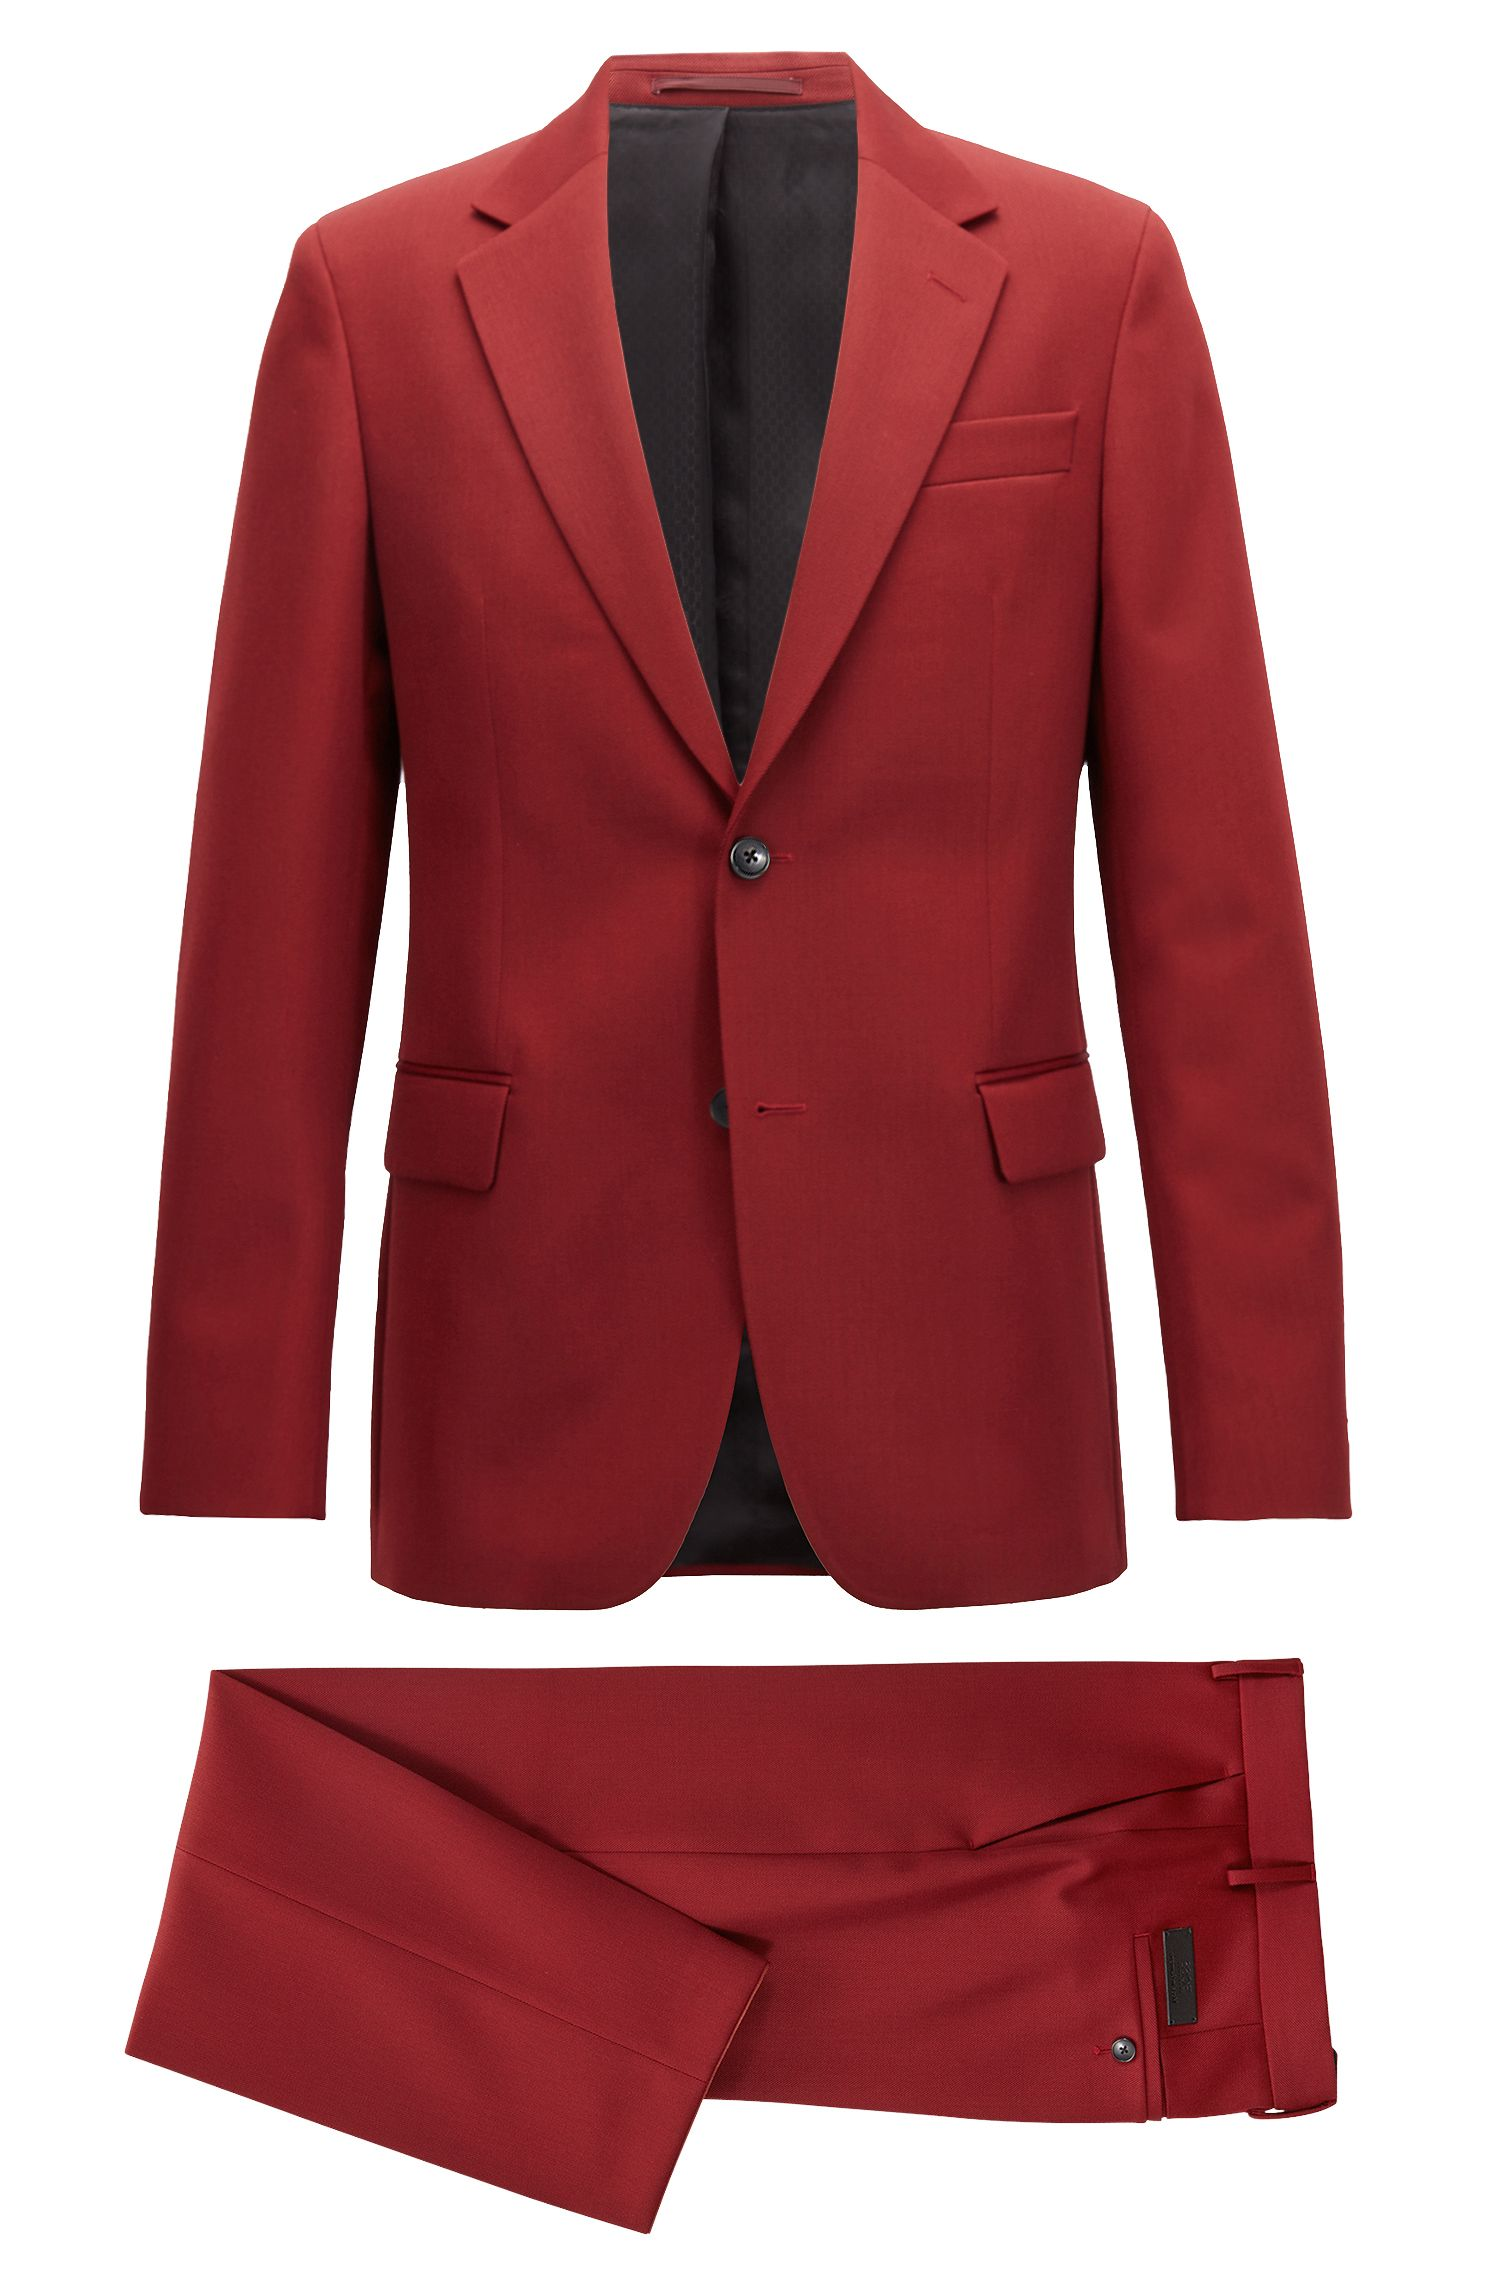 Costume Slim Fit Made in Germany en twill de laine vierge, Rouge sombre